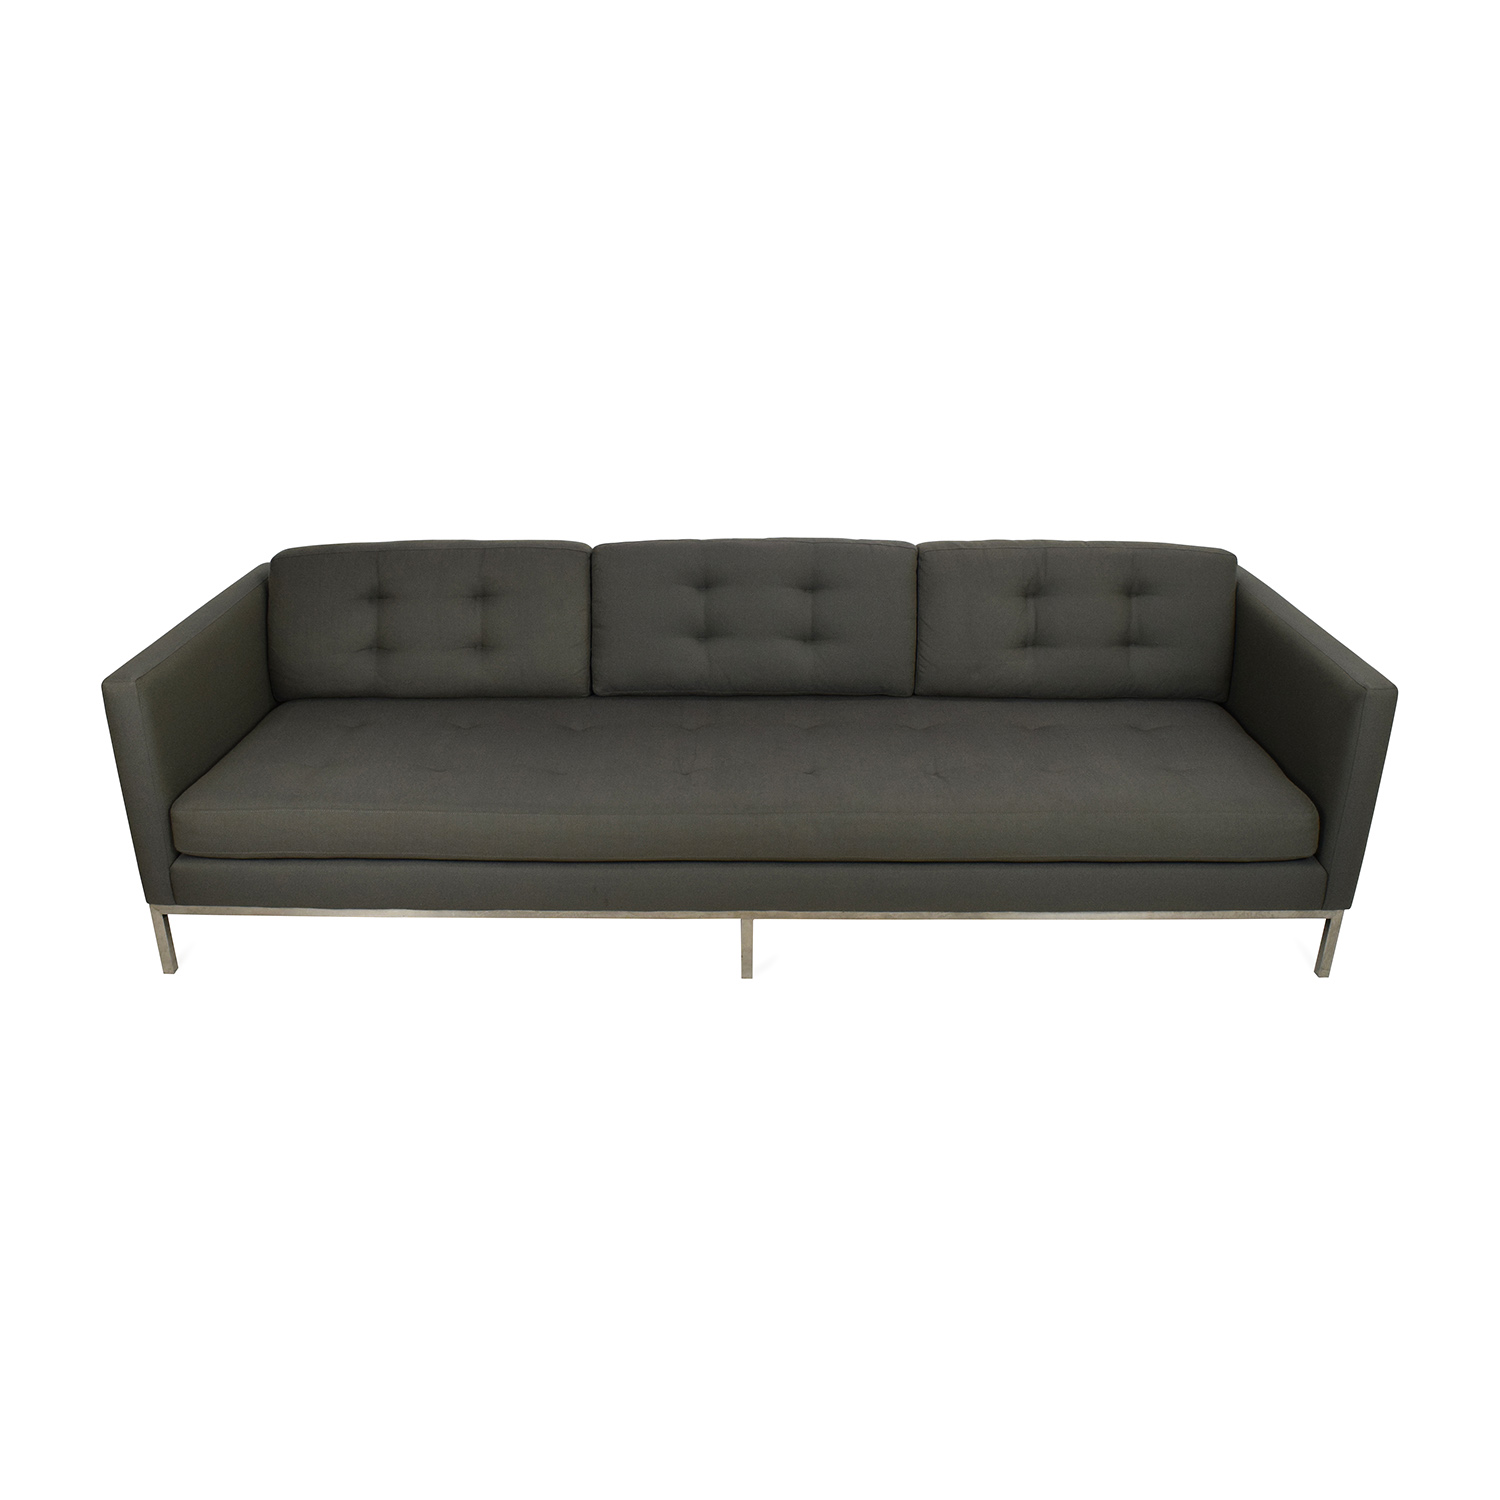 Room and Board Room & Board Sabine Sofa coupon